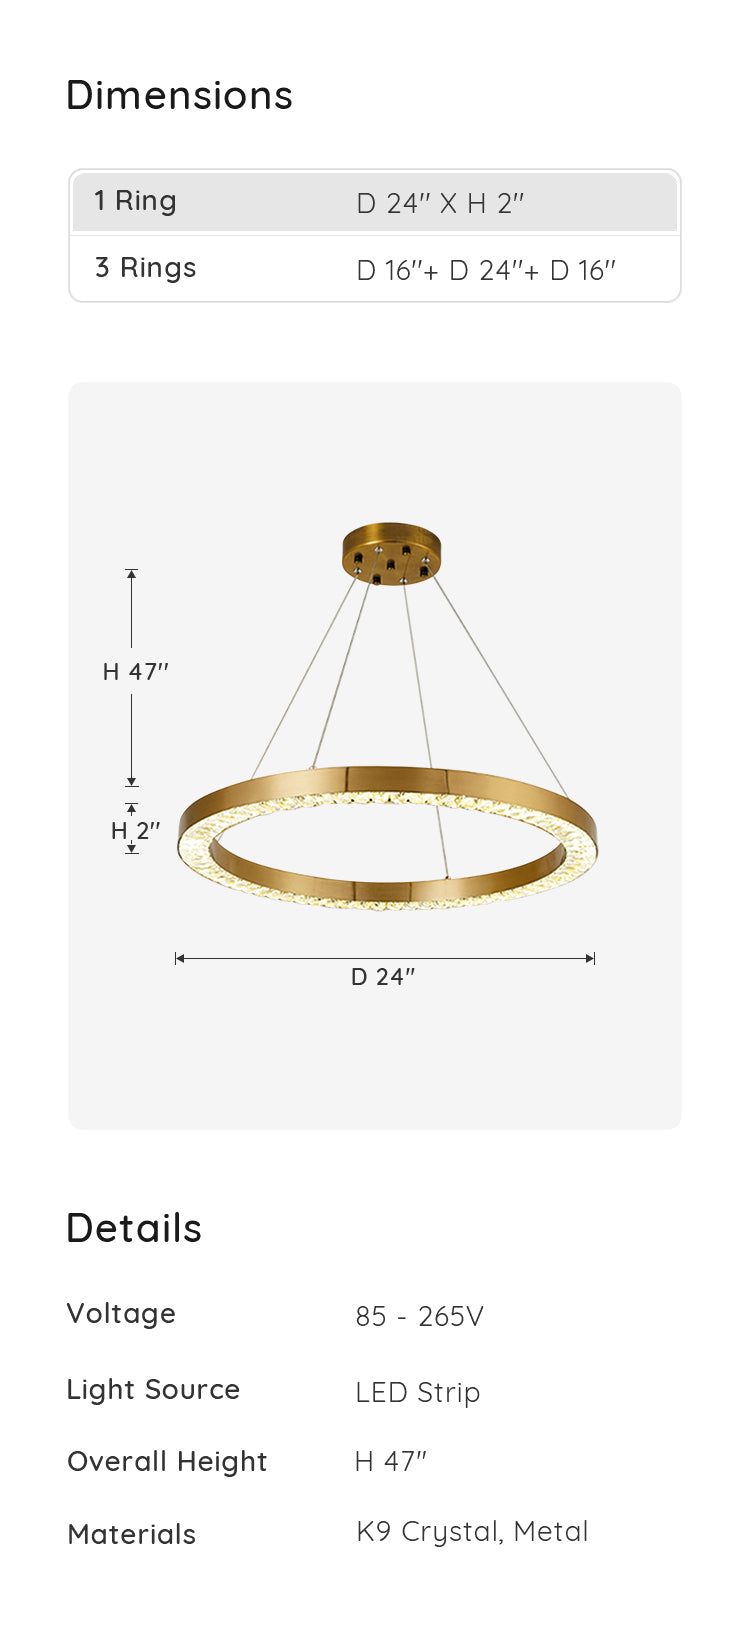 Crystal Gold Ring Pendant Light, 1 Ring dimensions & parameters